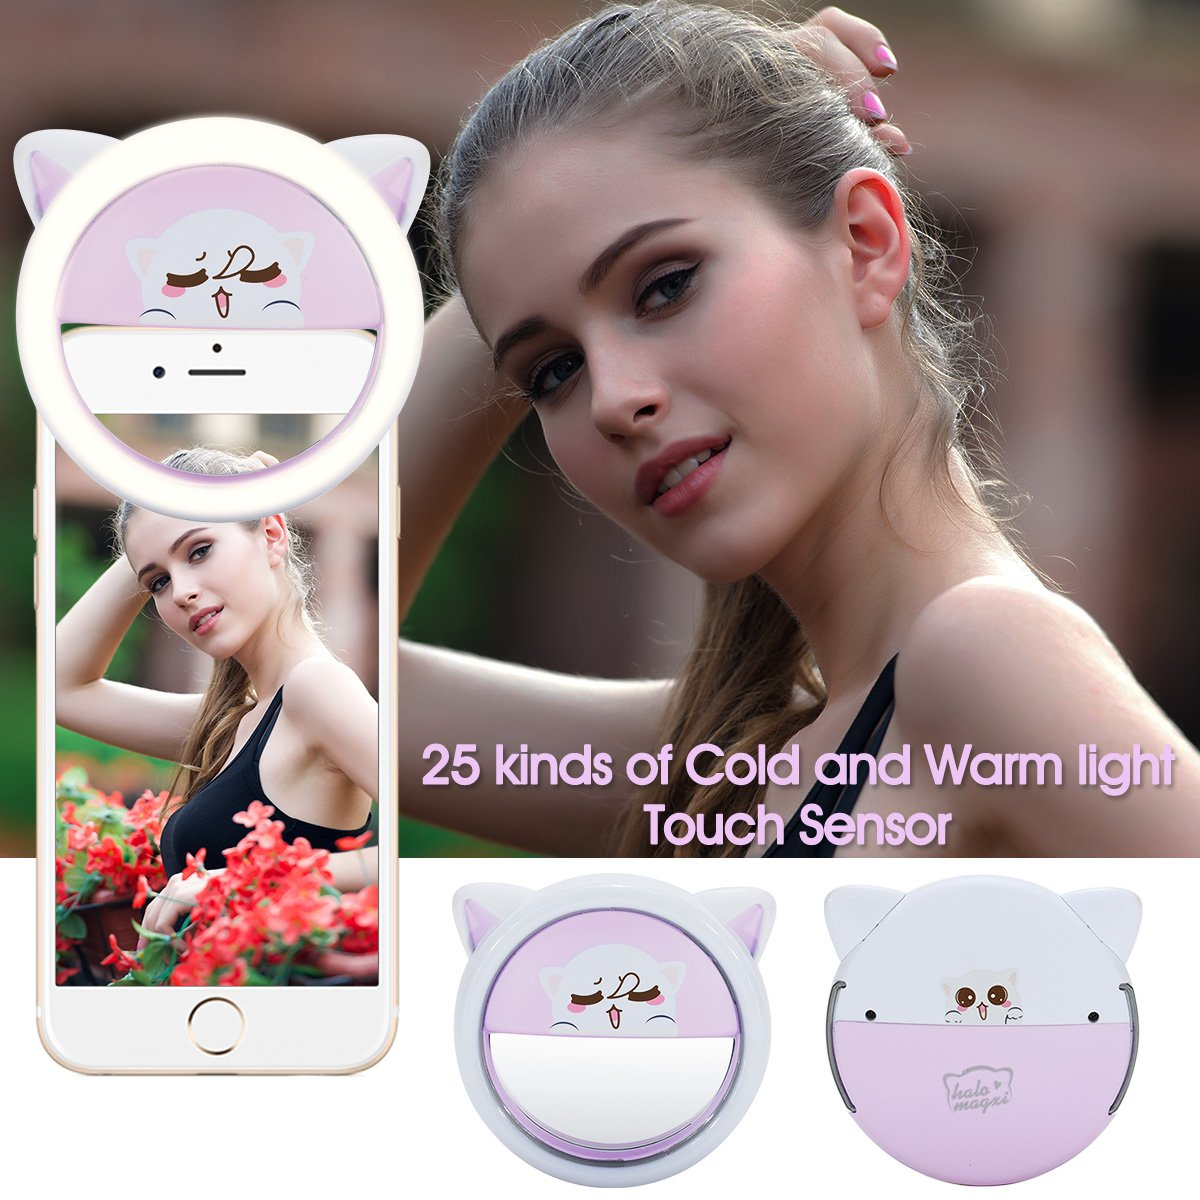 Selfie Light,Bienna Selfie Ring Light Flash Fill [44 LED][USB Rechargeable][5-Level Brightness & Color Temp] Camera Lighting With Power Bank and Stand for iPhone iPad Android Sumsung HTC Huawei-Purple